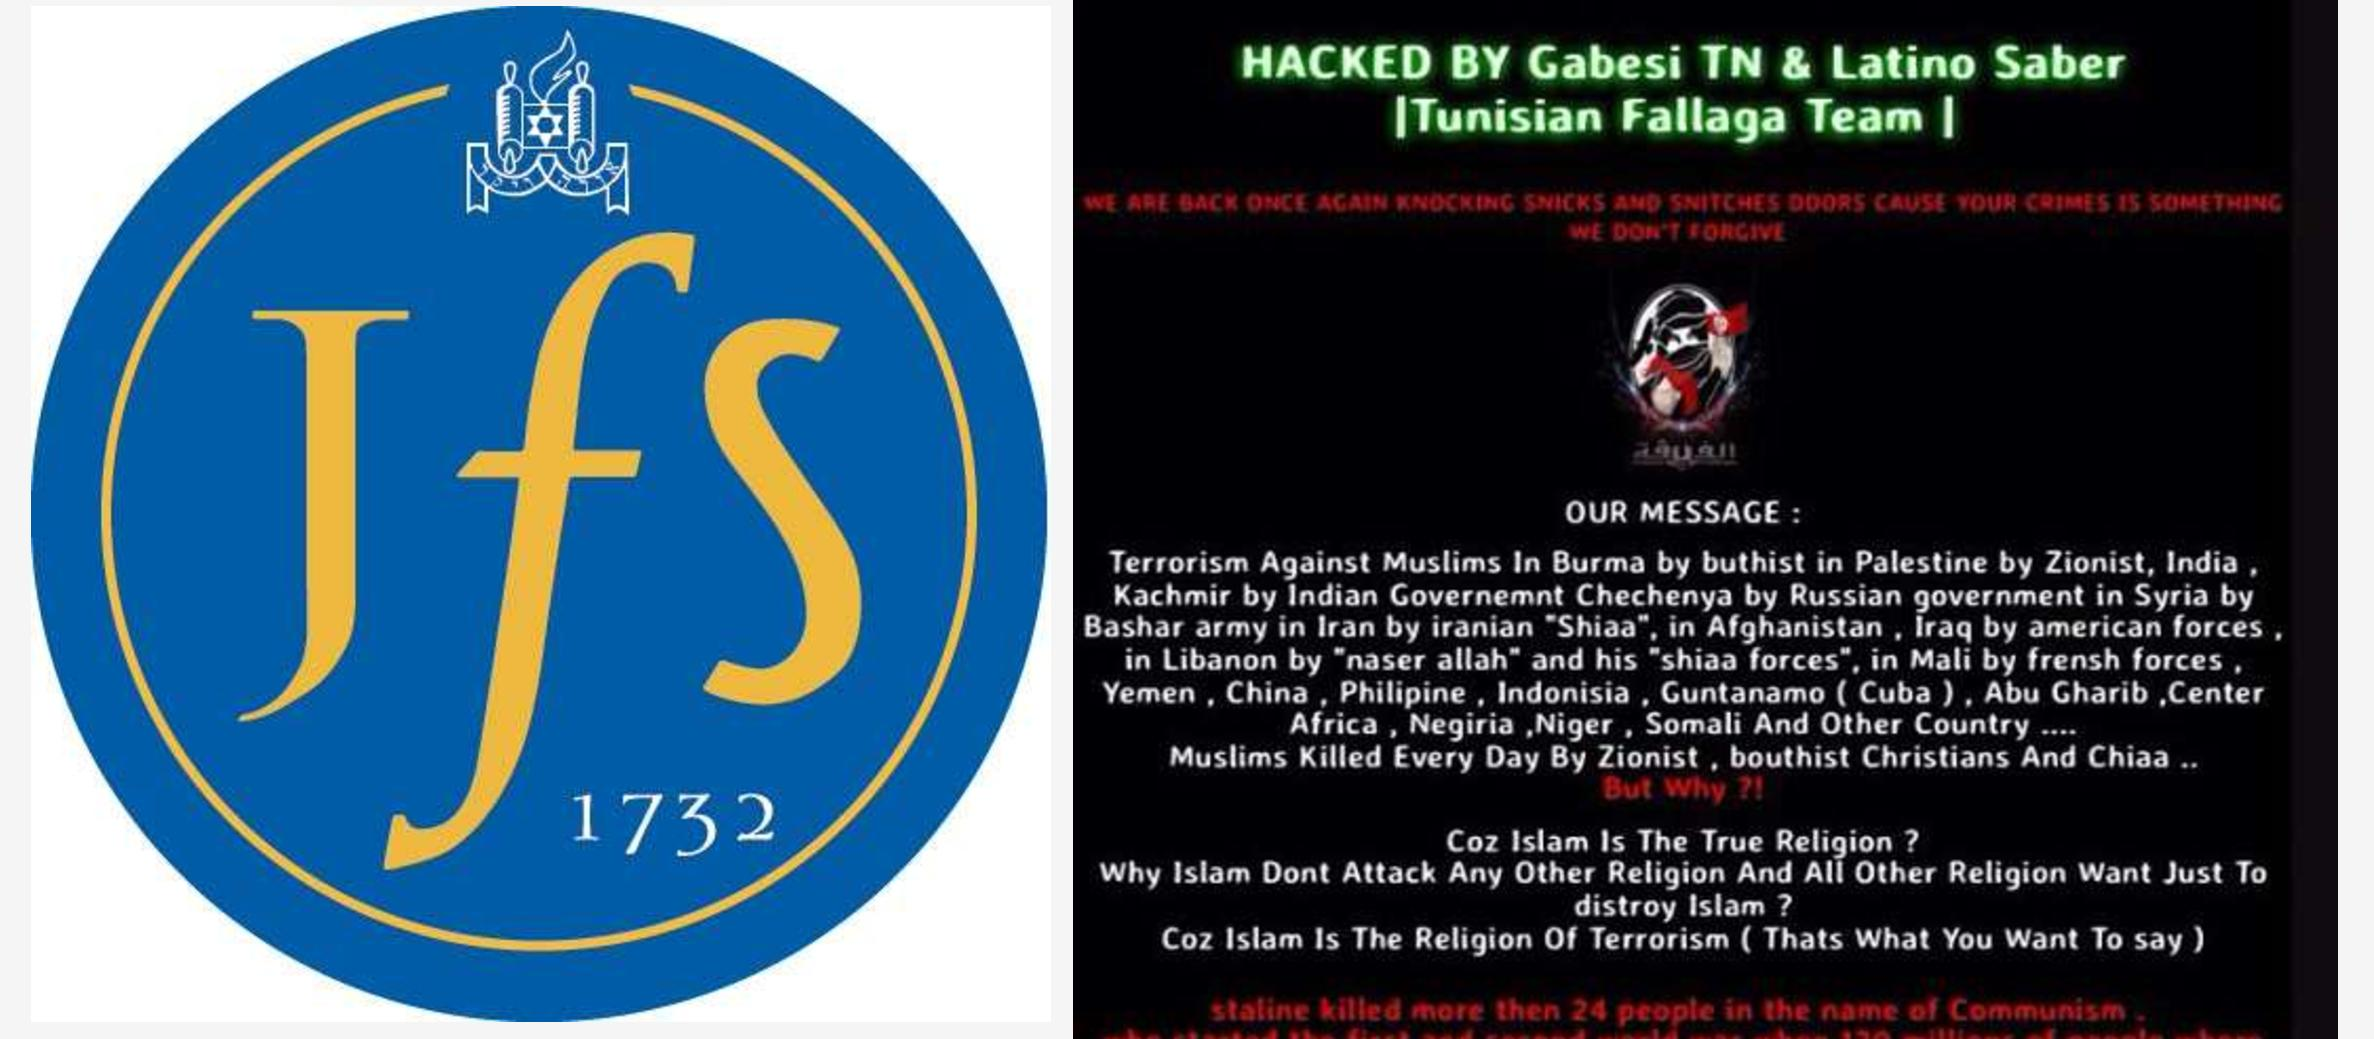 Britain's largest Jewish school hacked by Tunisian Islamists